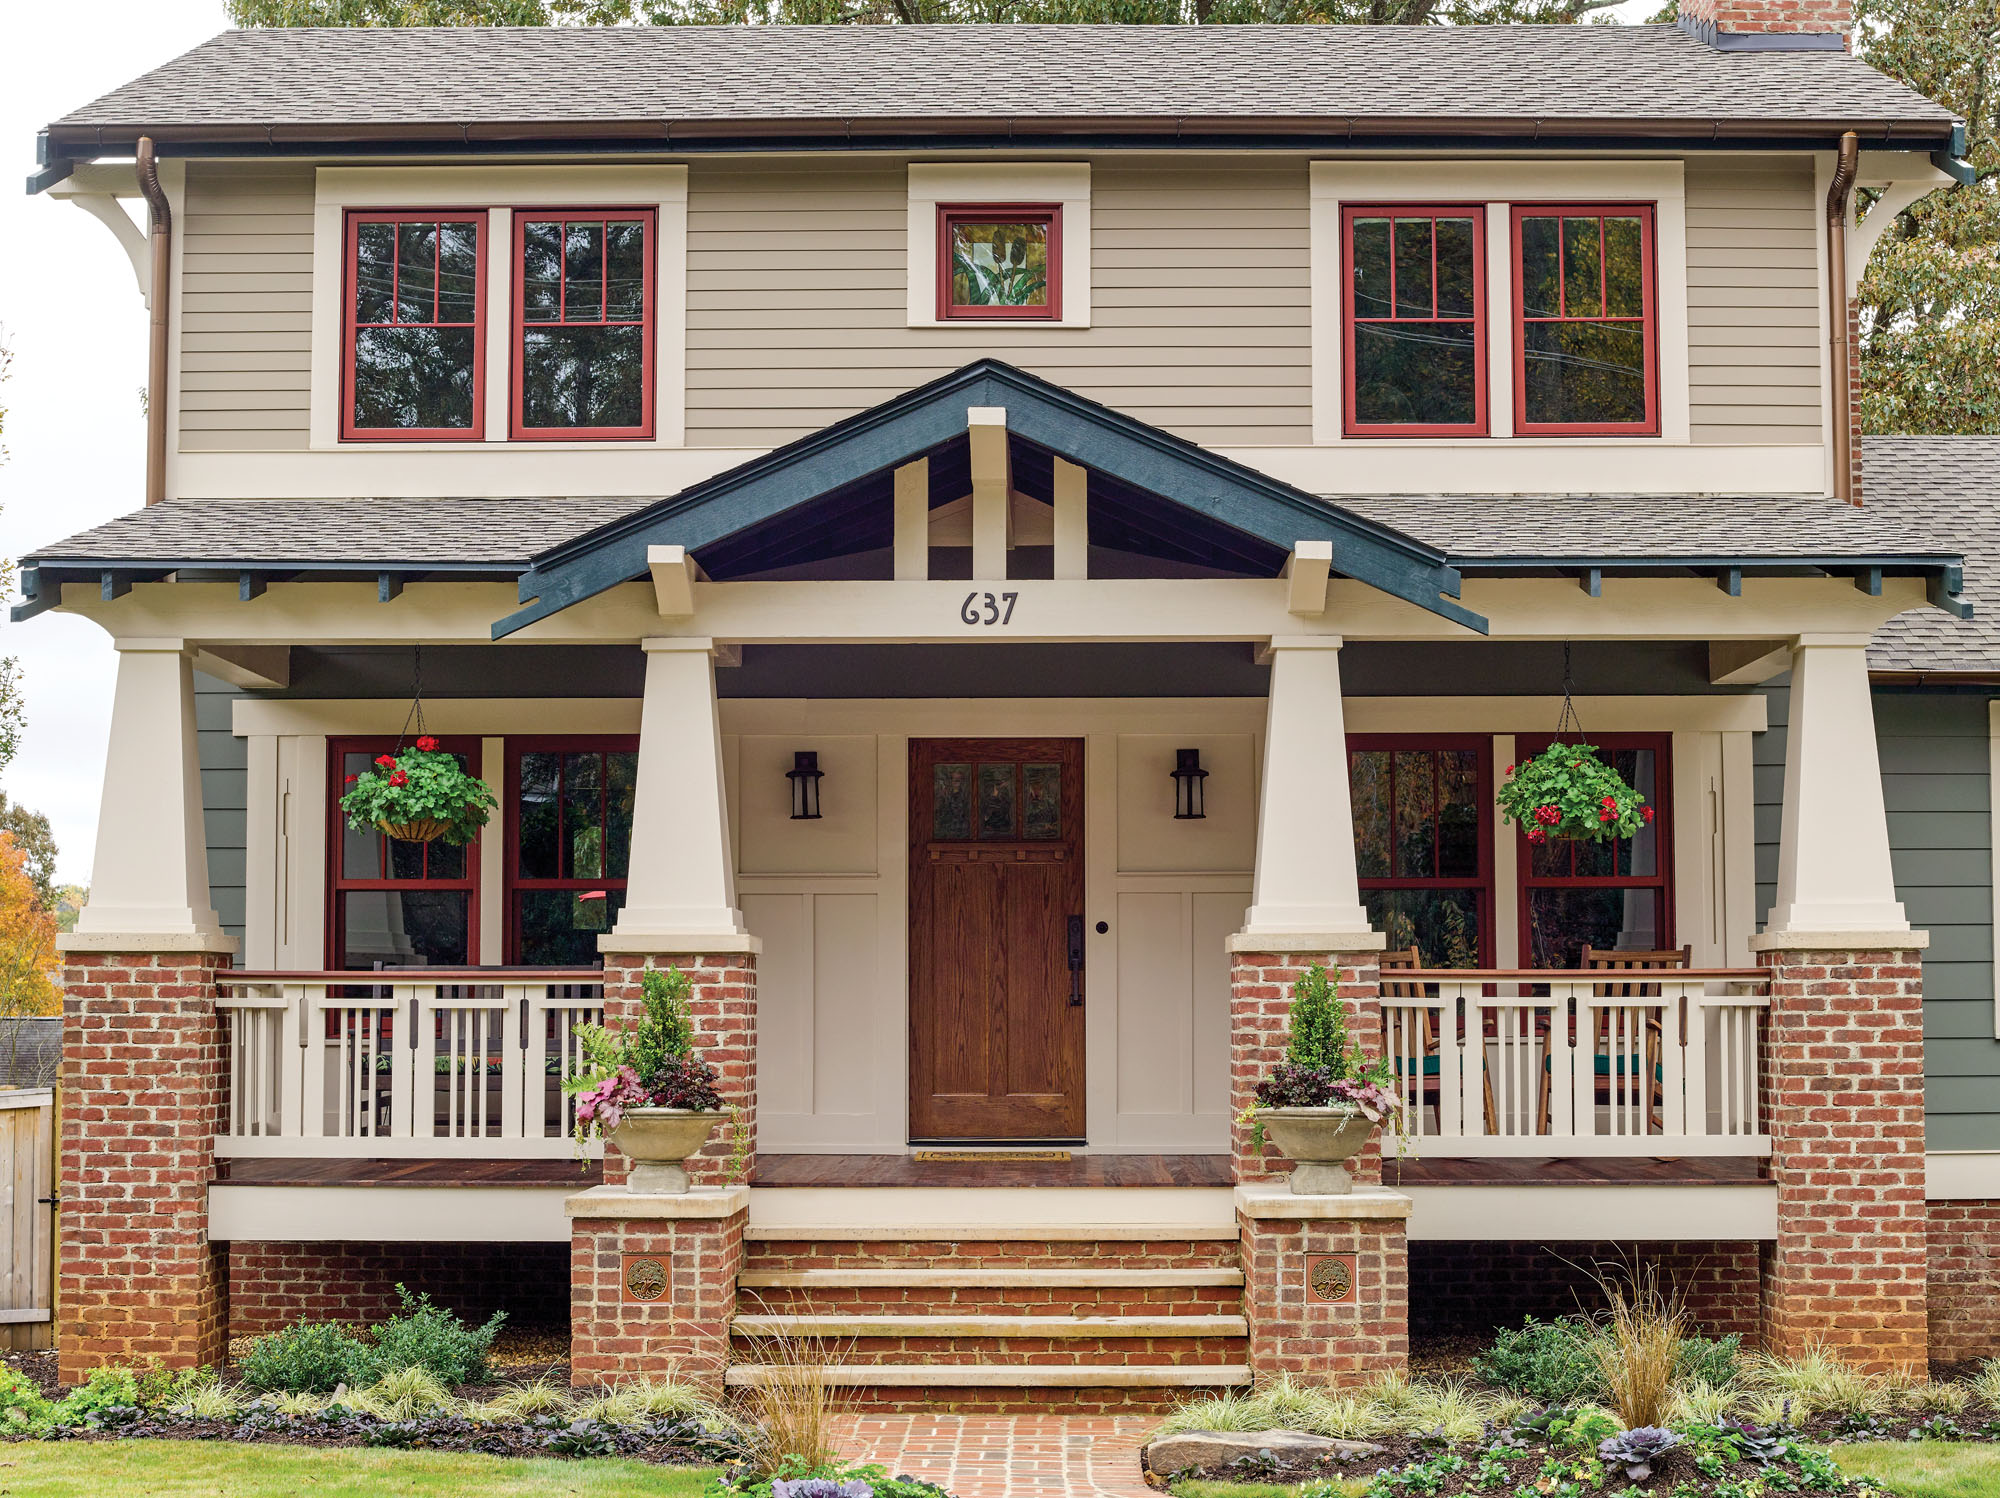 Arts & Crafts Architecture and How To Spot Arts & Crafts Homes ...